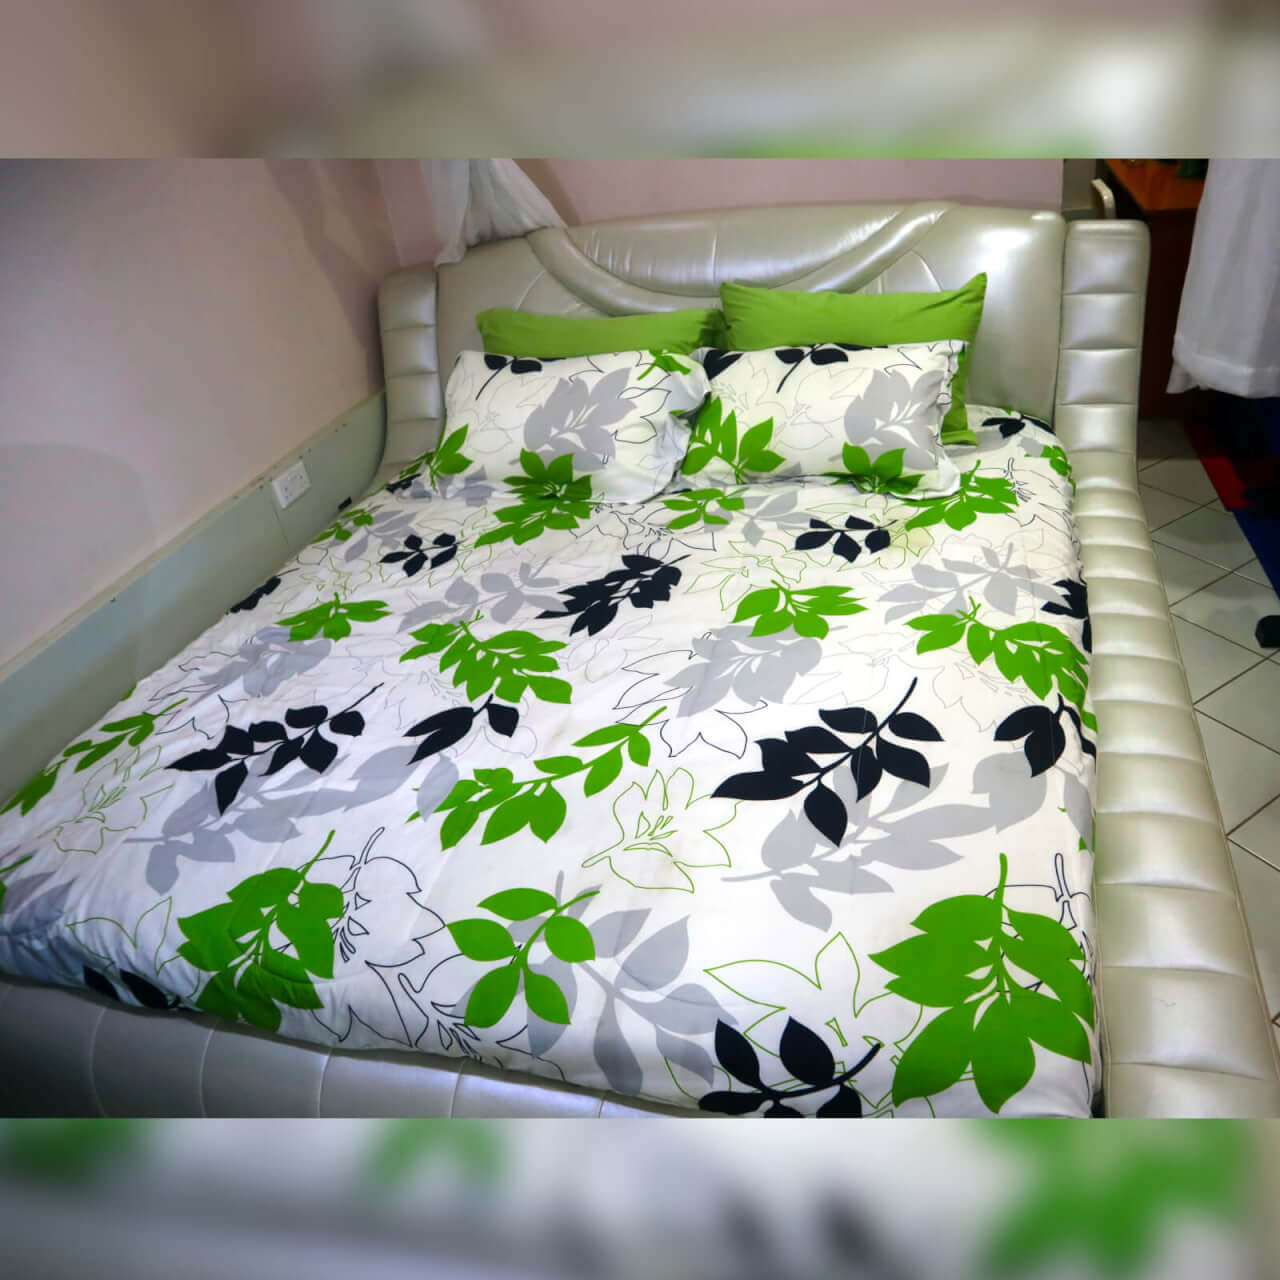 vienna-bed-featured_product